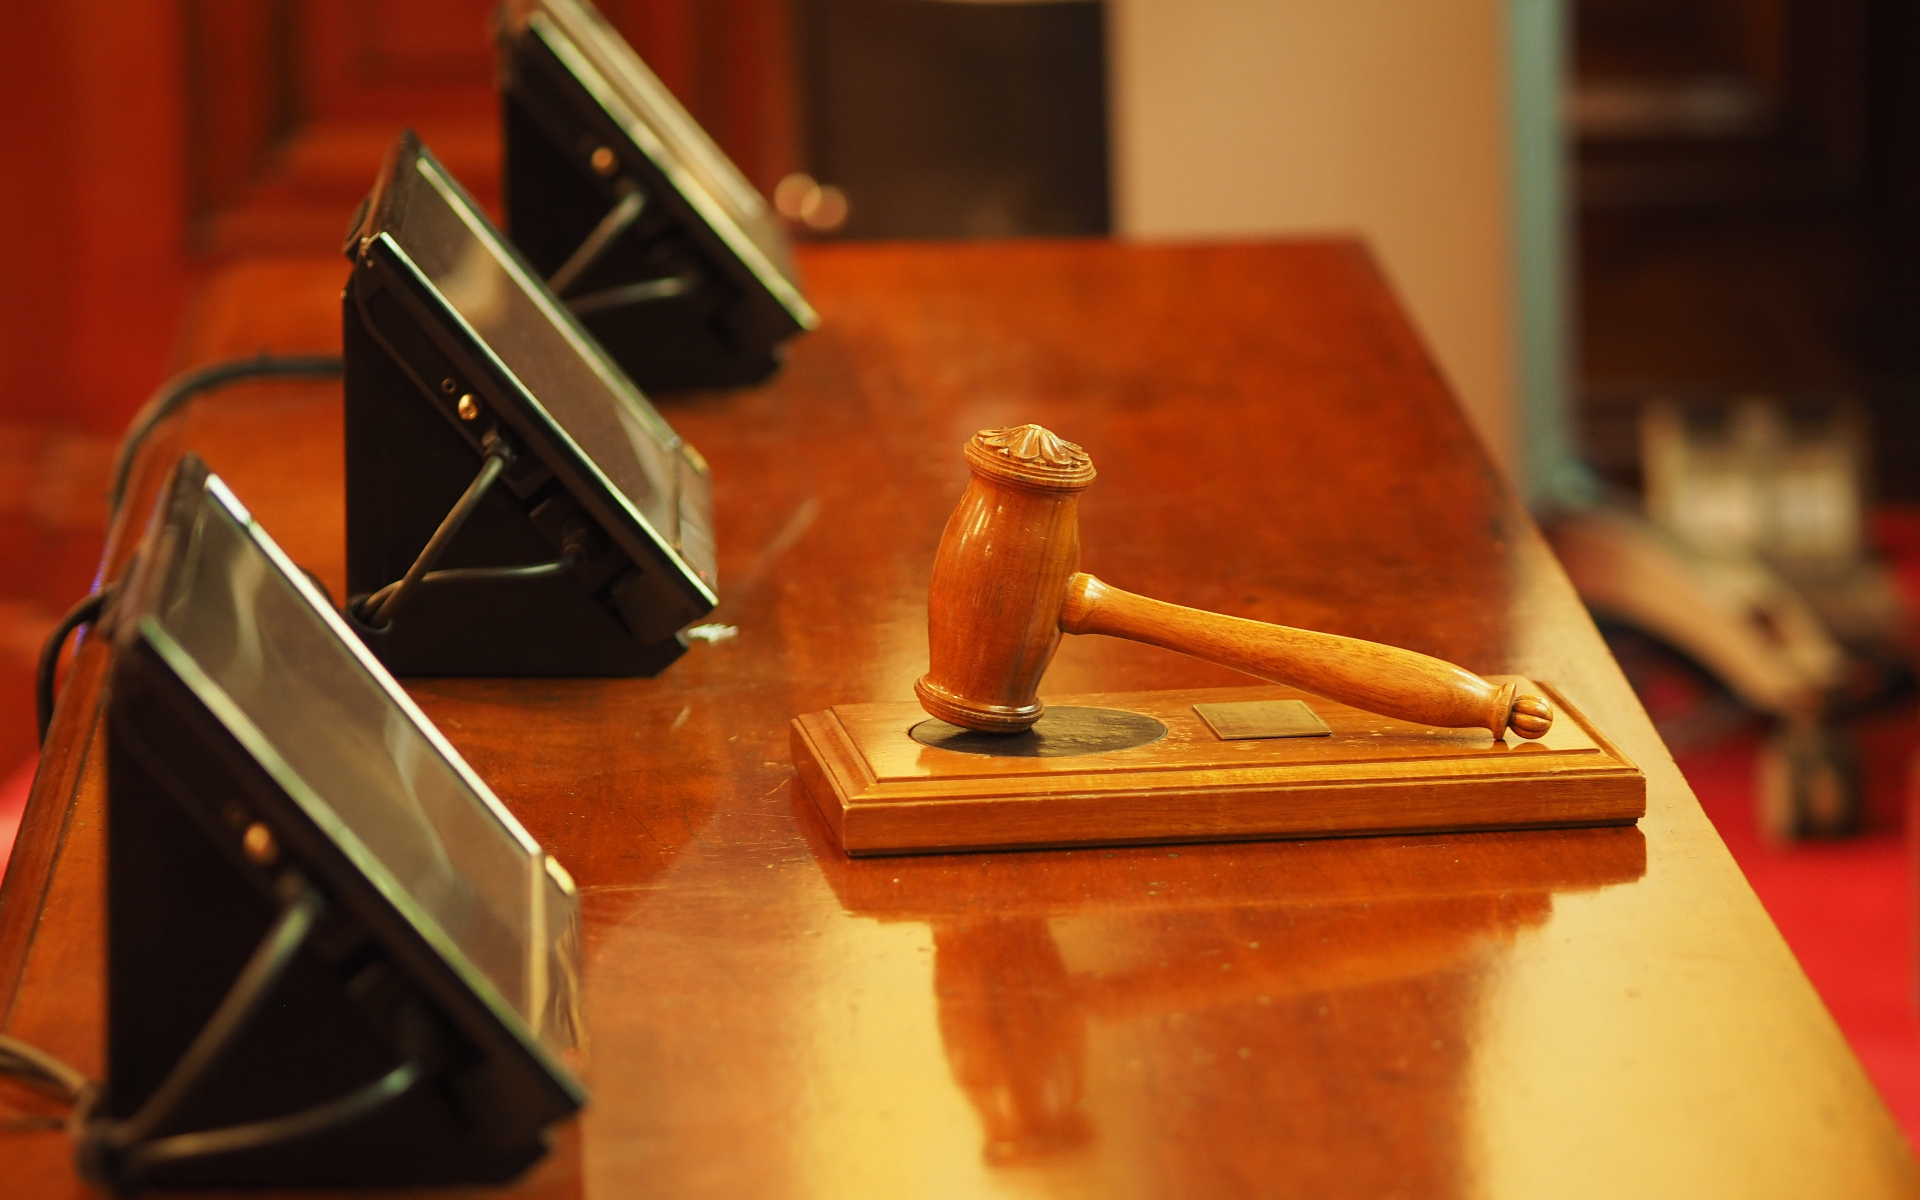 A gavel lays on a wooden table with monitor screens nearby.